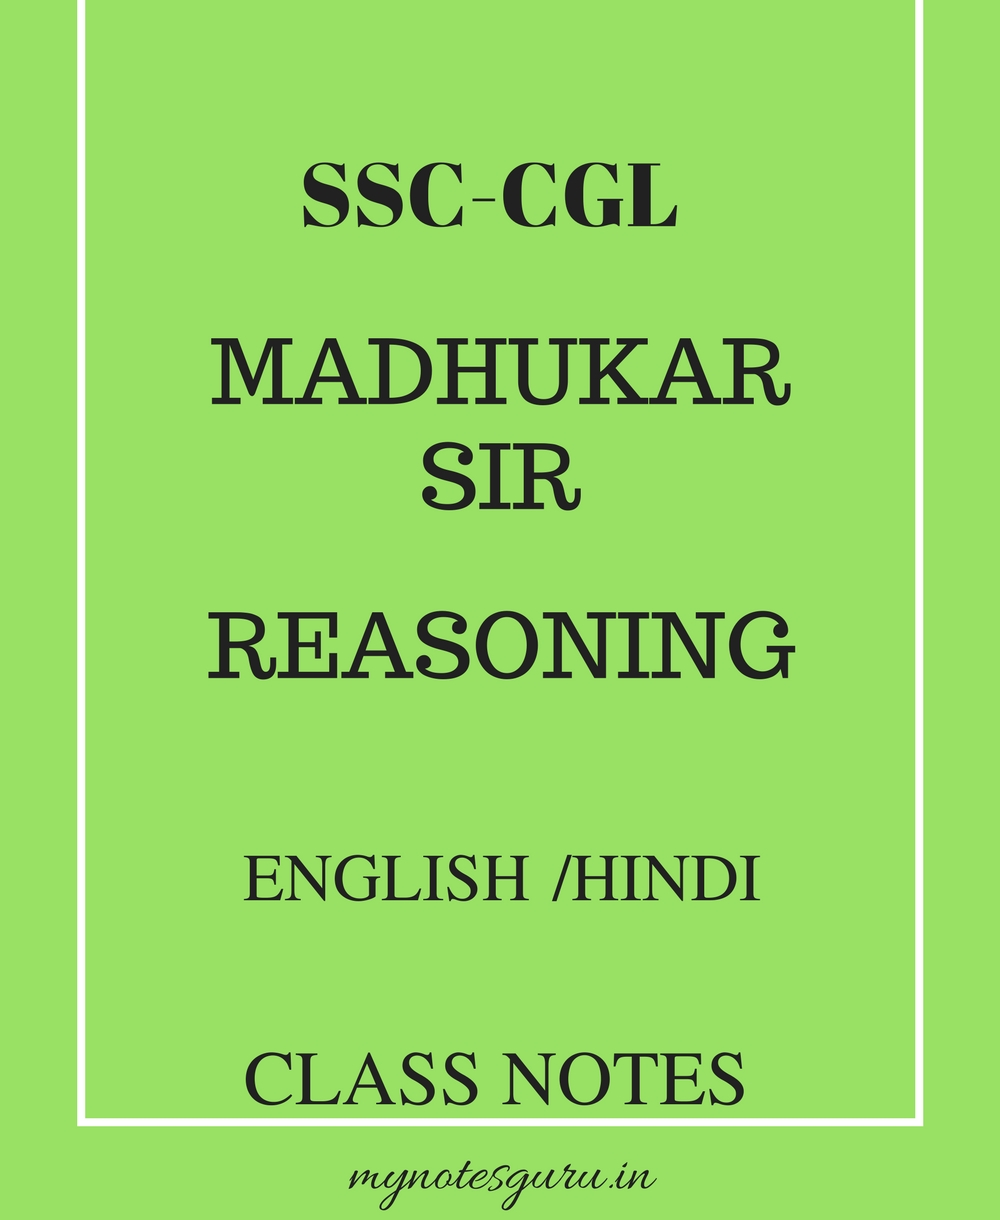 SSC - CGL - Reasoning - Madhukar Sir - Class Notes